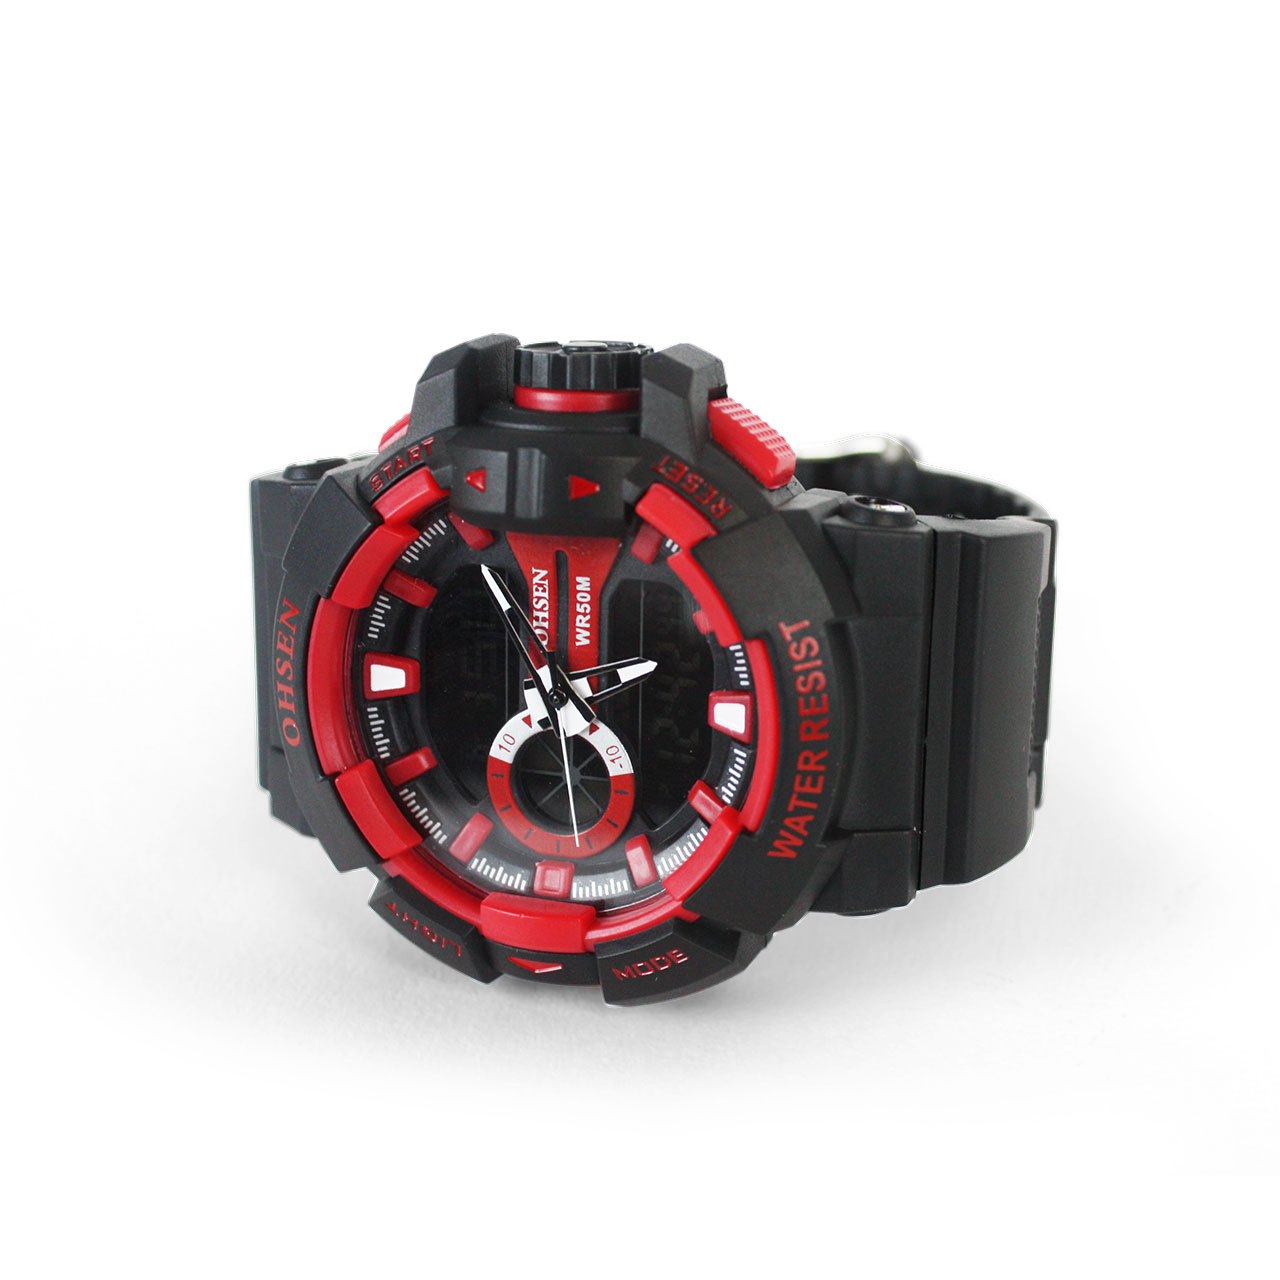 Ohsen 50M Sports AD1505 Ultra-Durable Red Water Resist Rubber Wristwatch